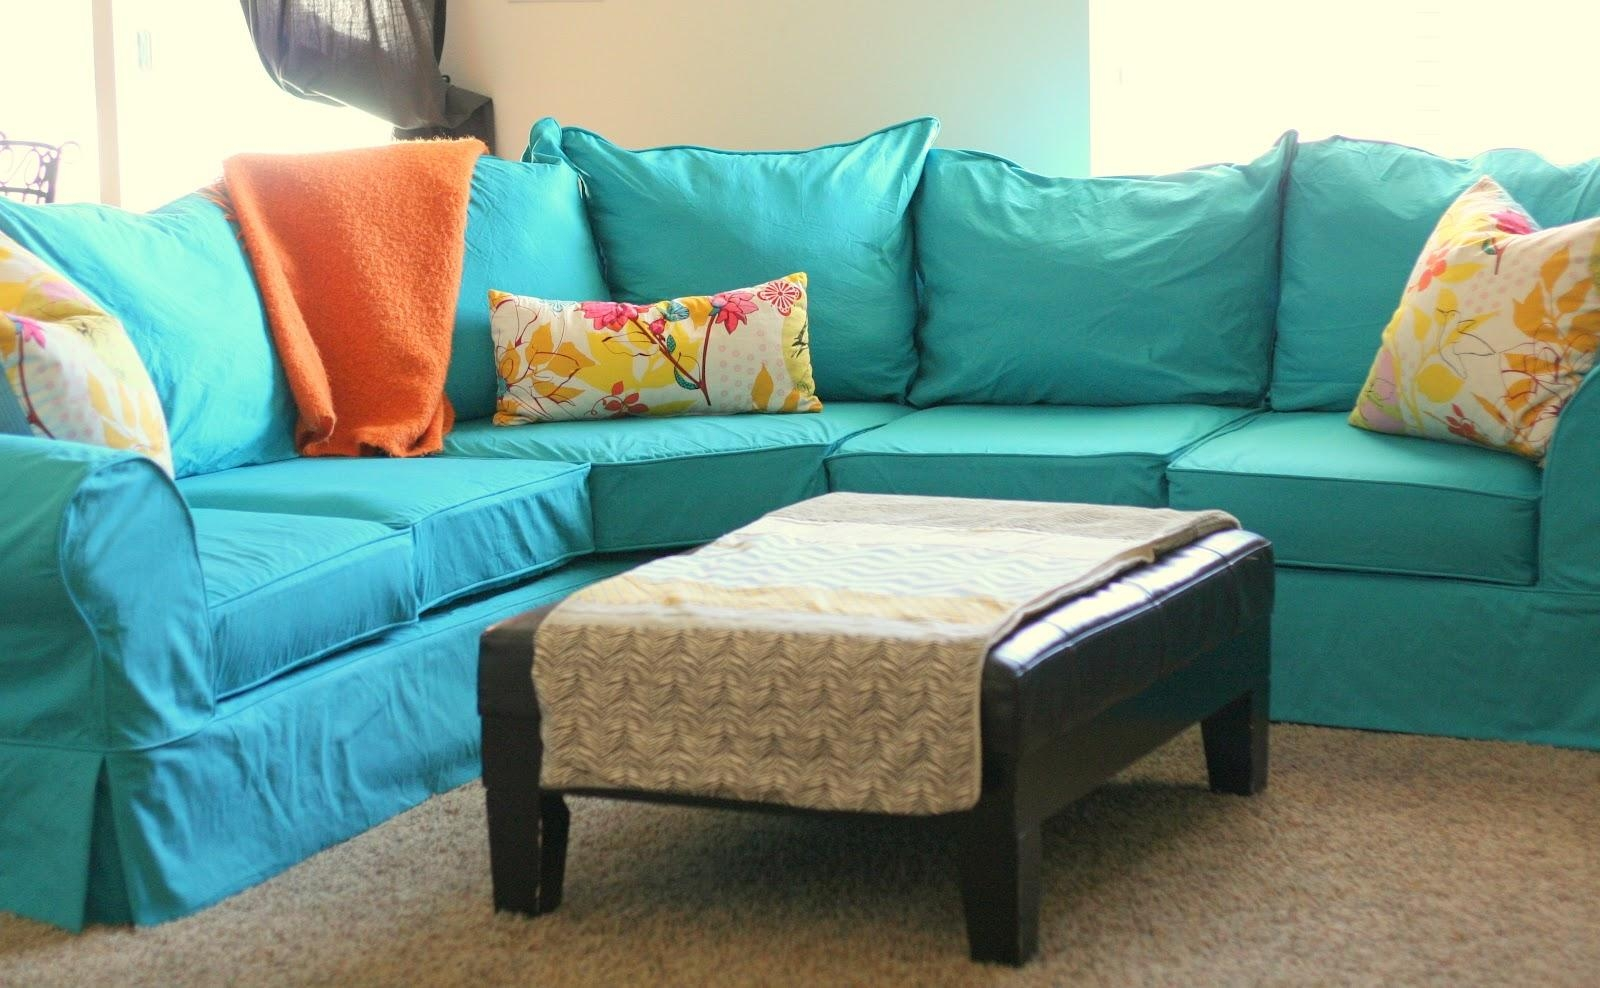 Brilliant Patterned Couch Slipcovers Advice On Ideas Intended For Patterned Sofa Slipcovers (View 7 of 20)